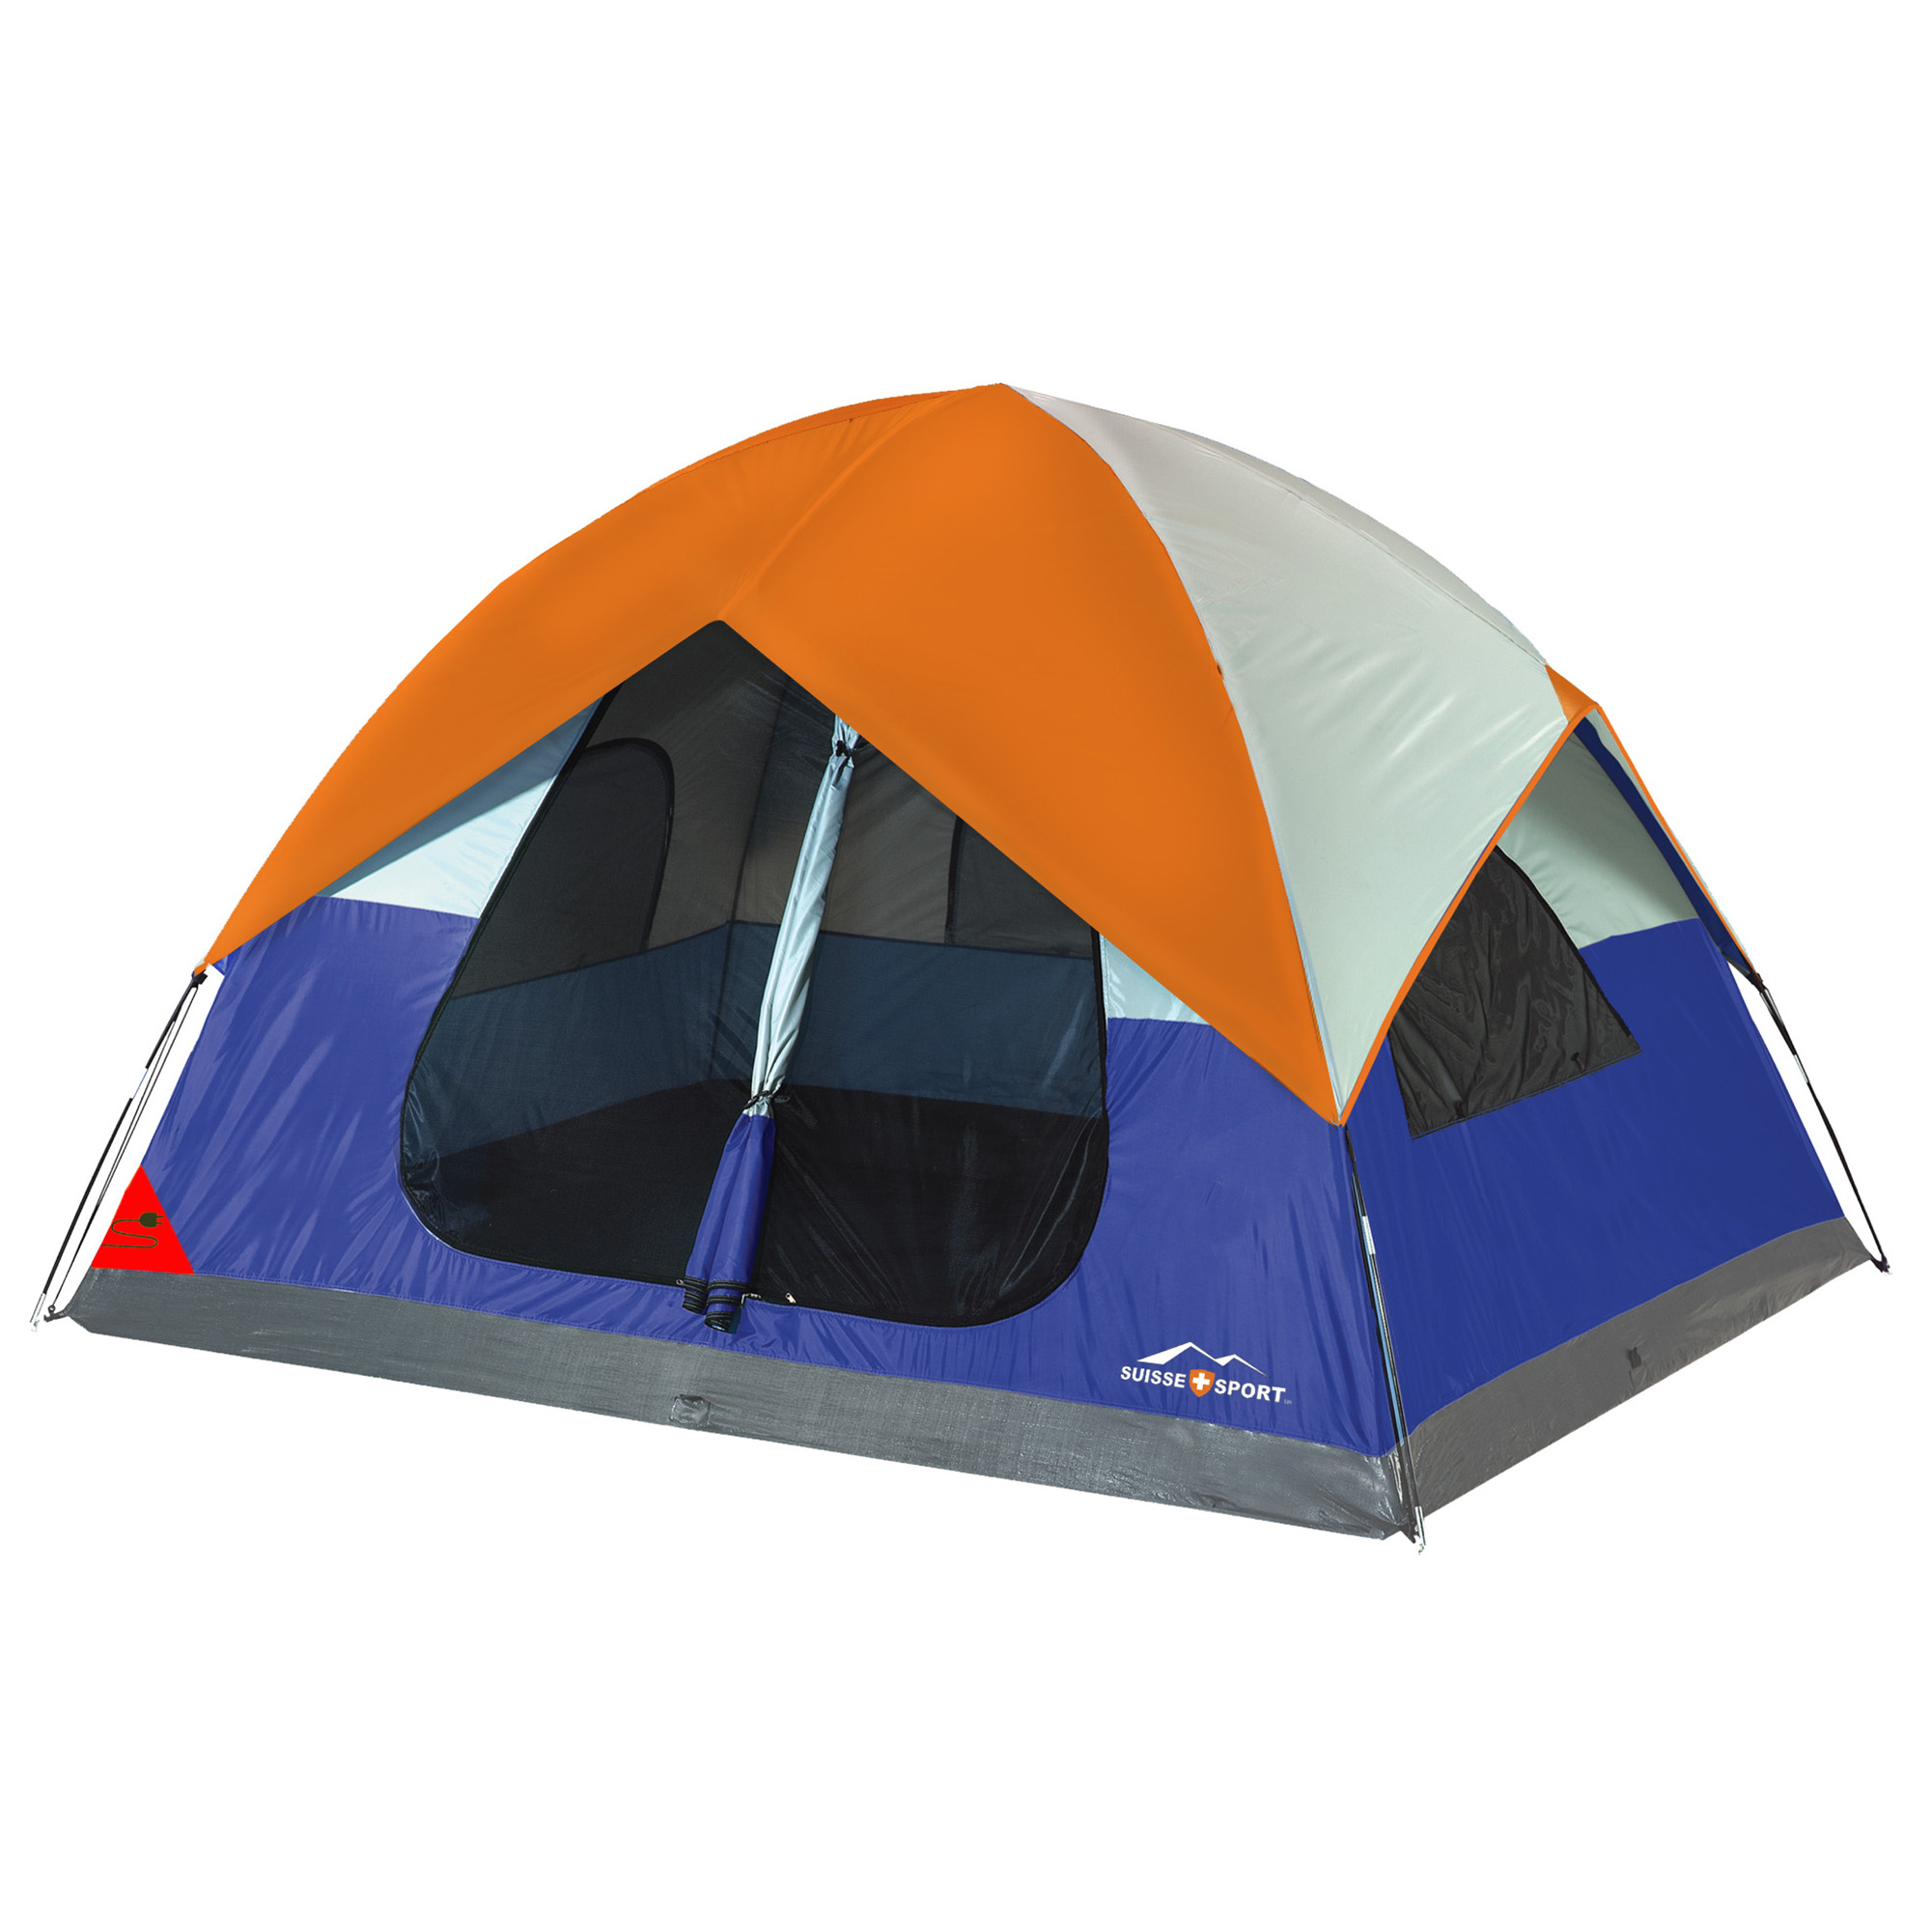 Suisse Sport 10' x 8' Yosemite 5-Person Dome Tent